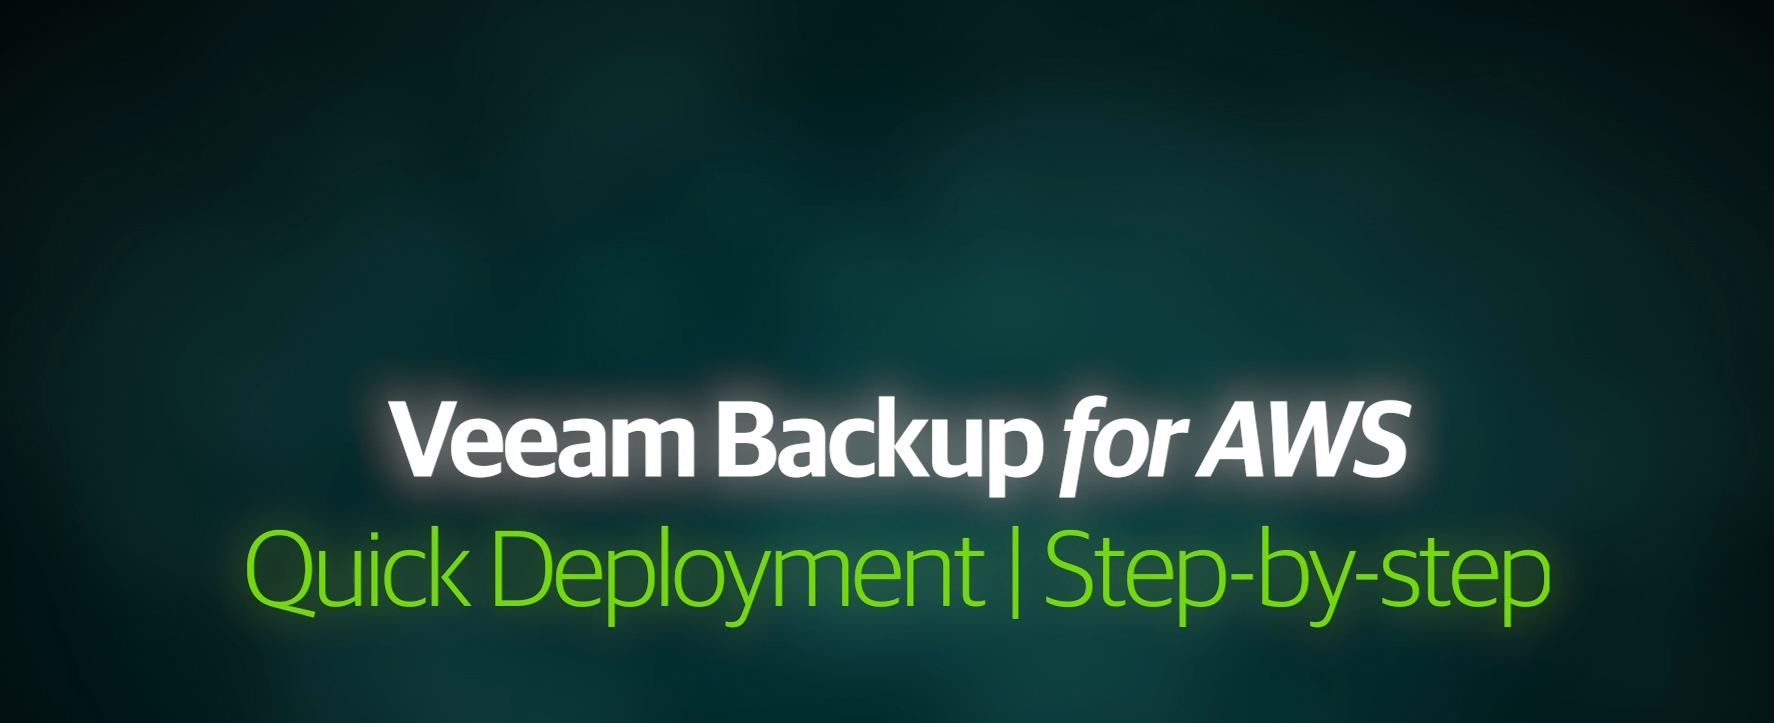 Veeam Backup for AWS — Step-by-step quick deployment